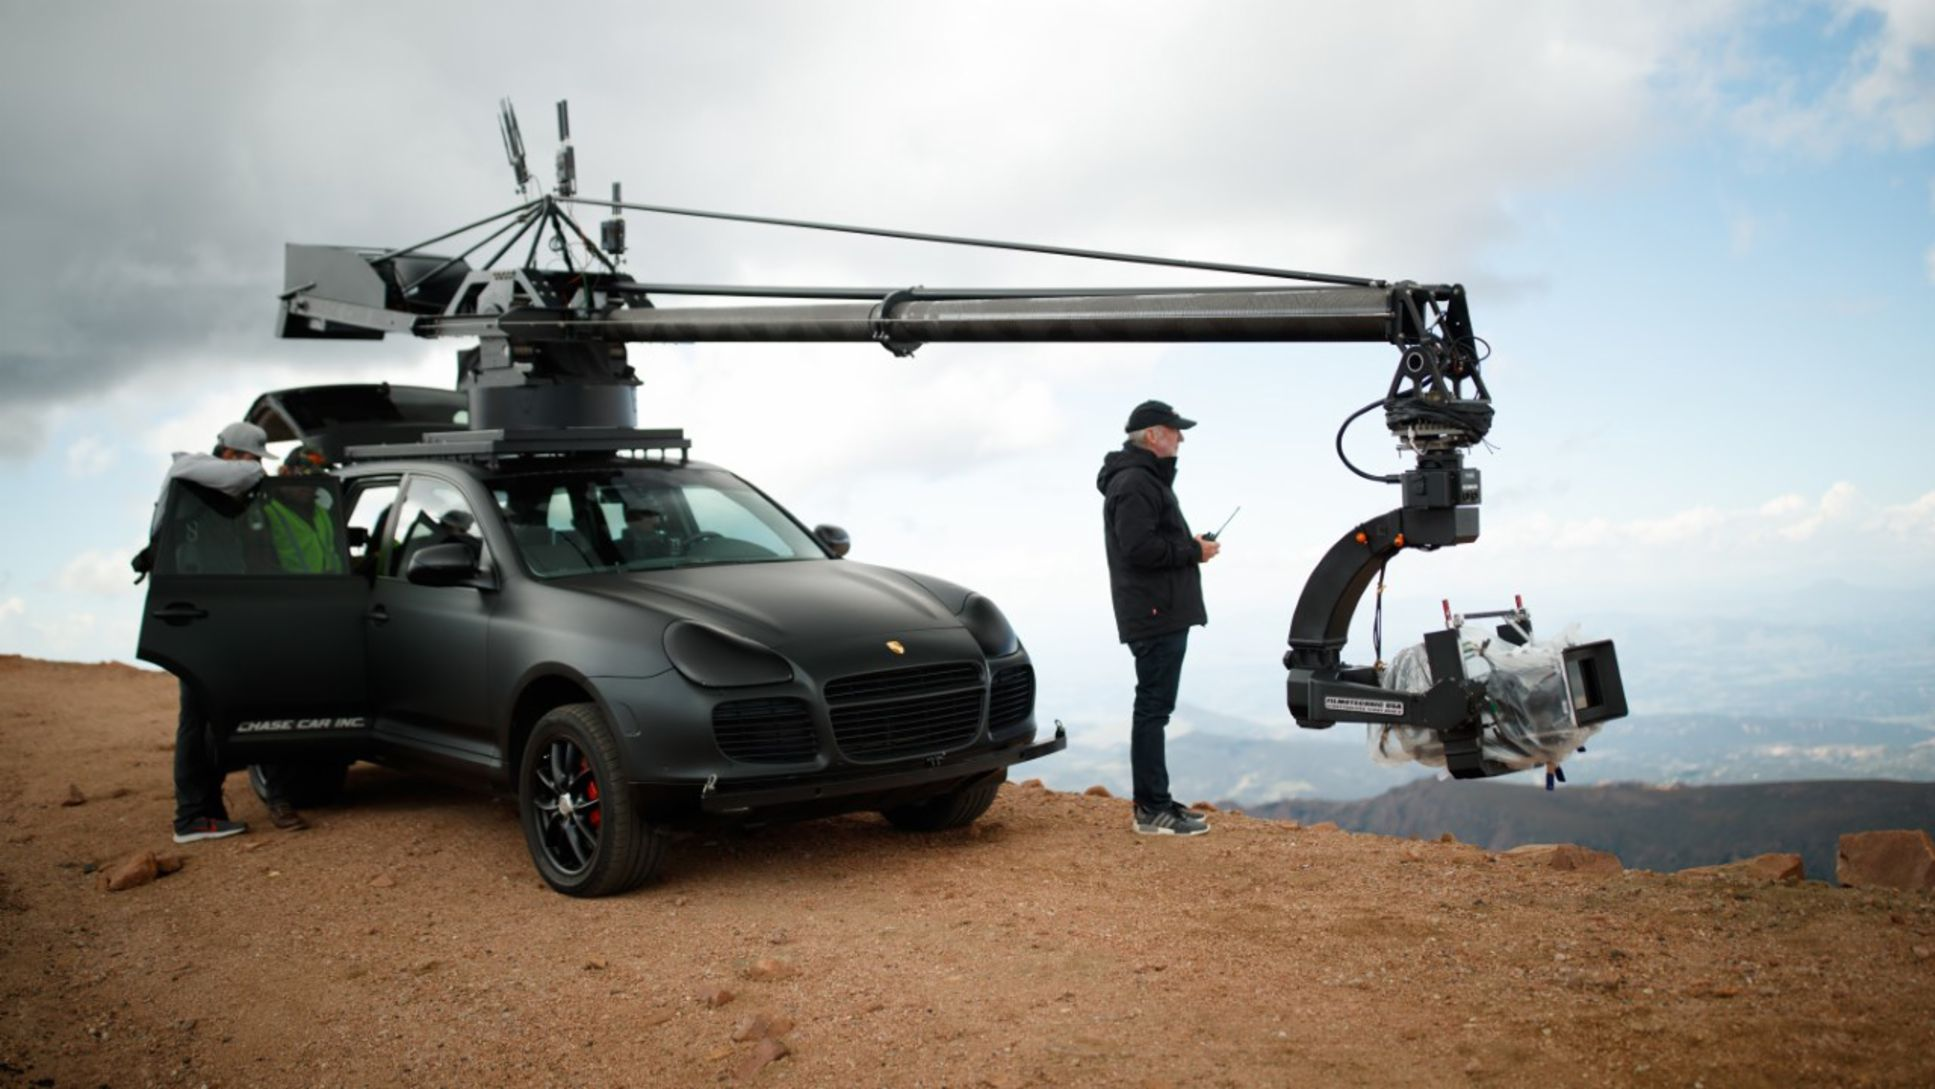 Filmmaking with Jeff Zwart, 2020, Porsche AG